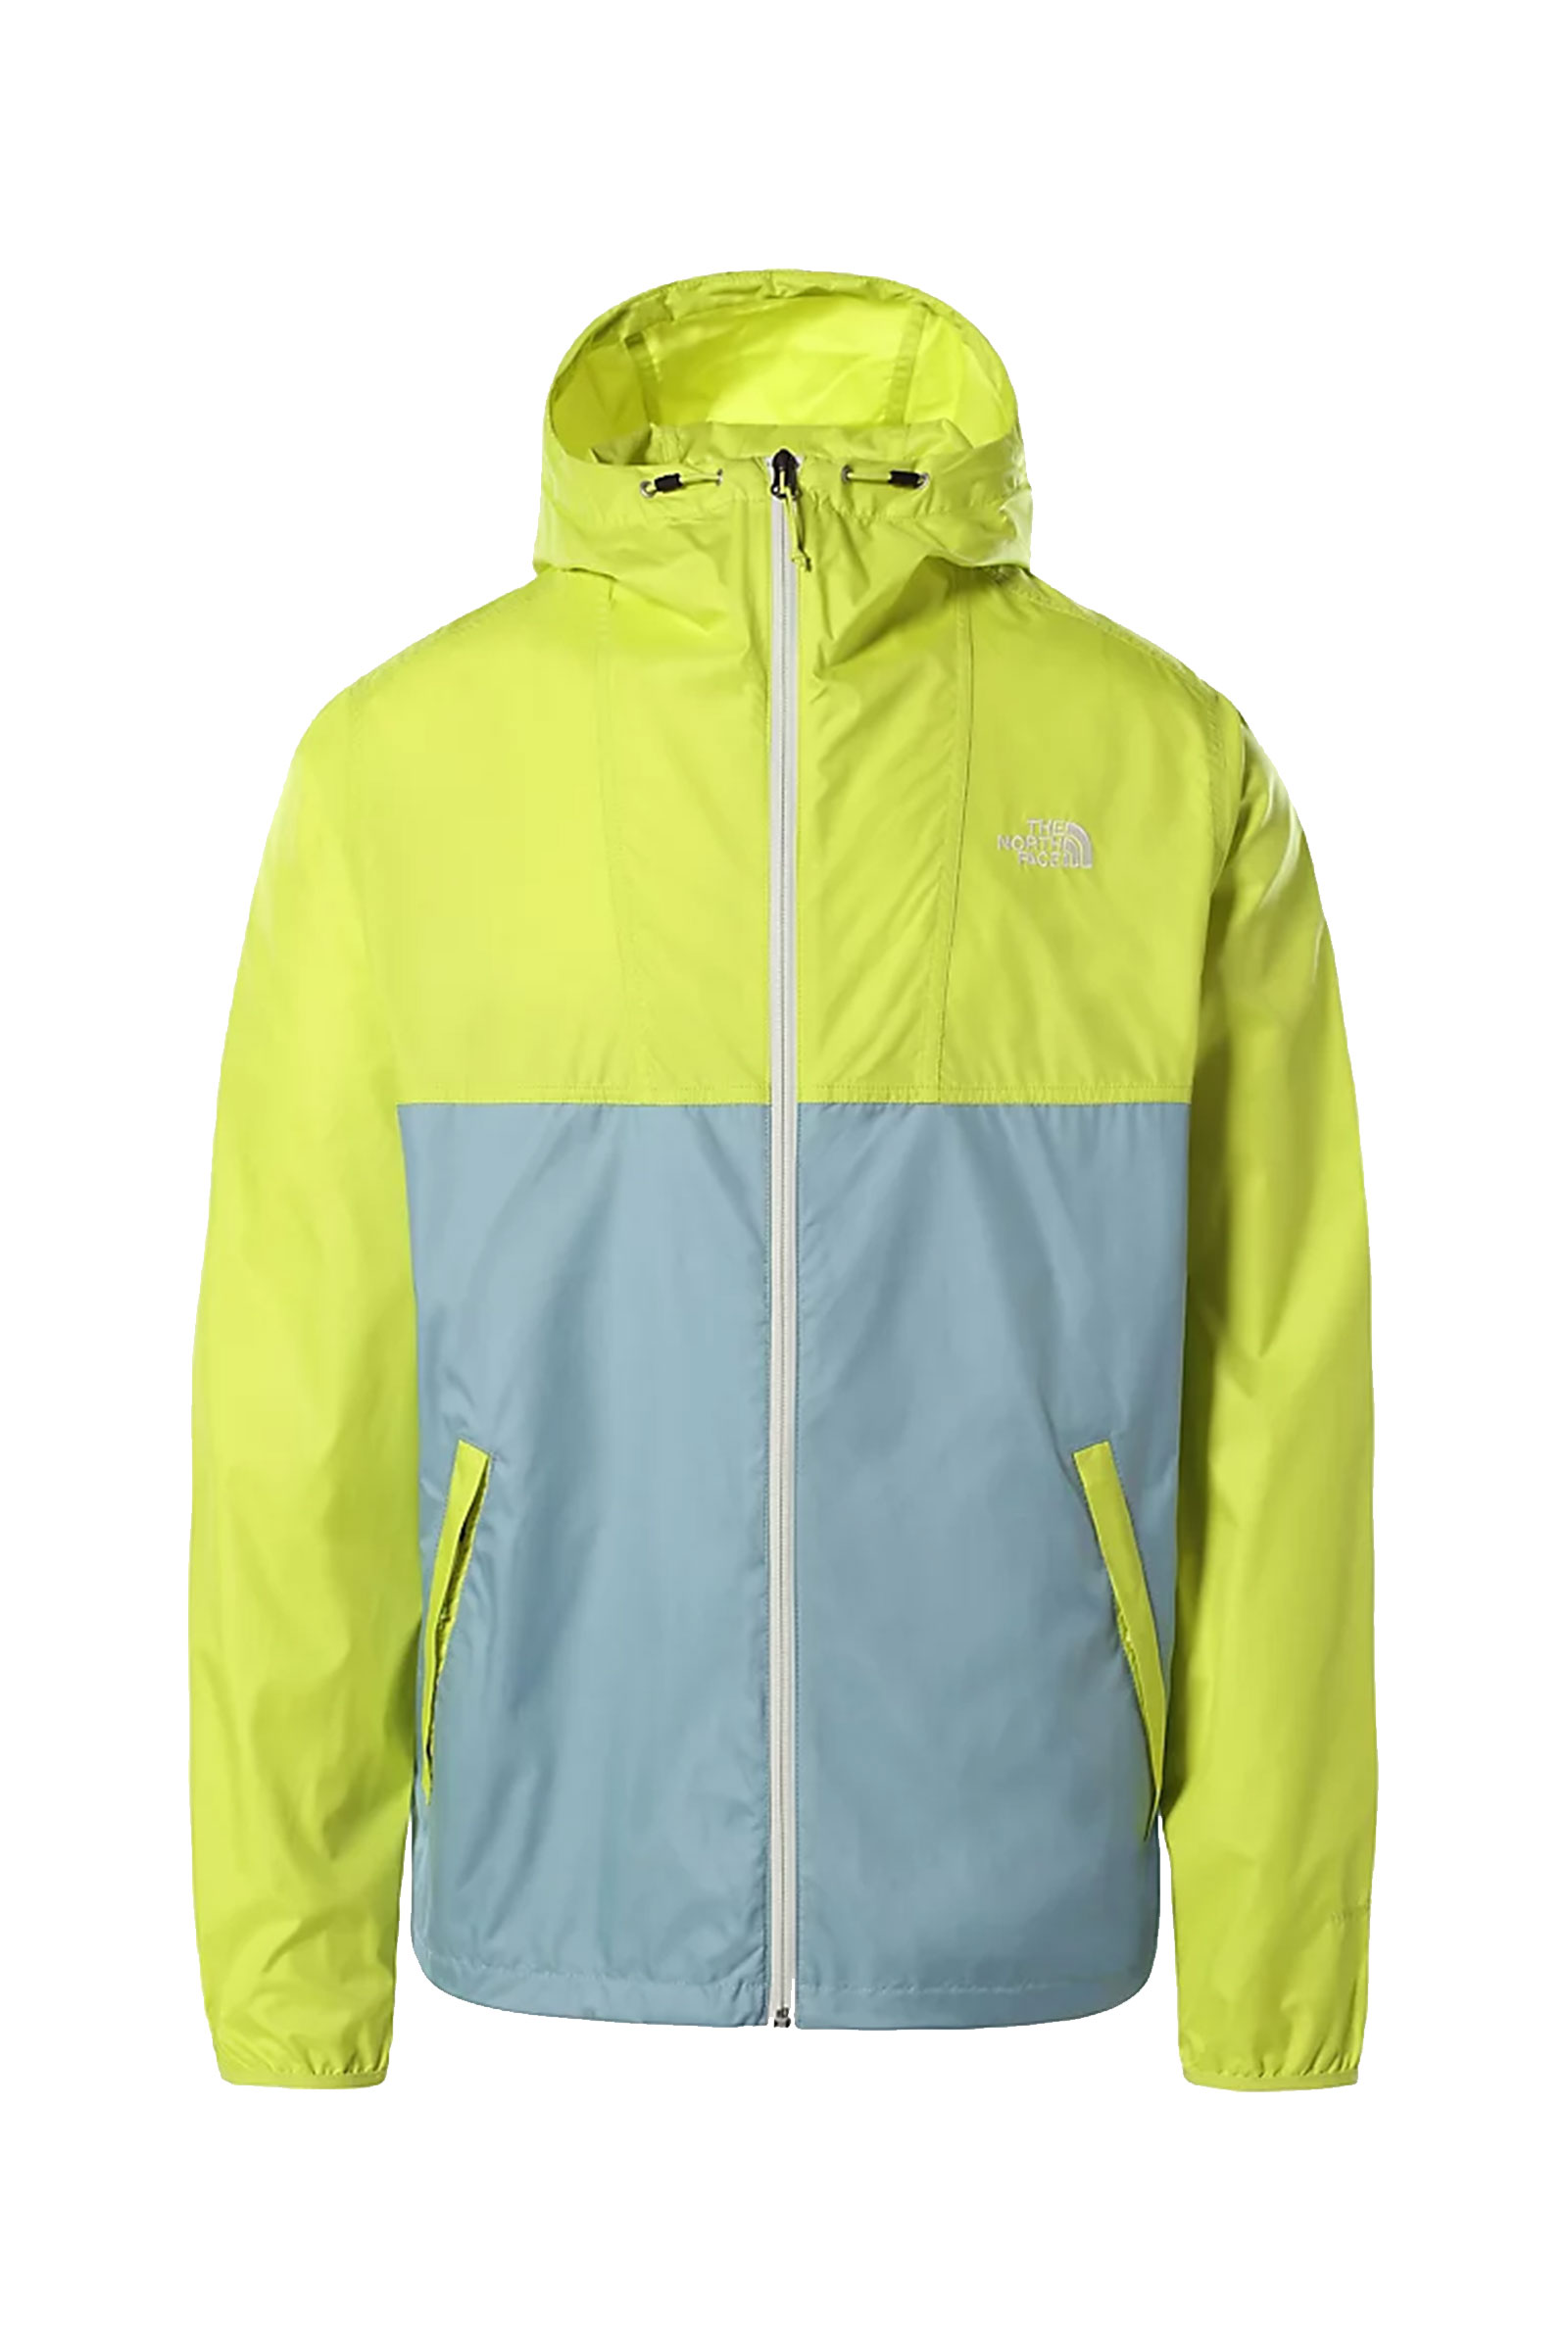 THE NORTH FACE Giubbino Uomo THE NORTH FACE | Giubbino | NF0A55STY681